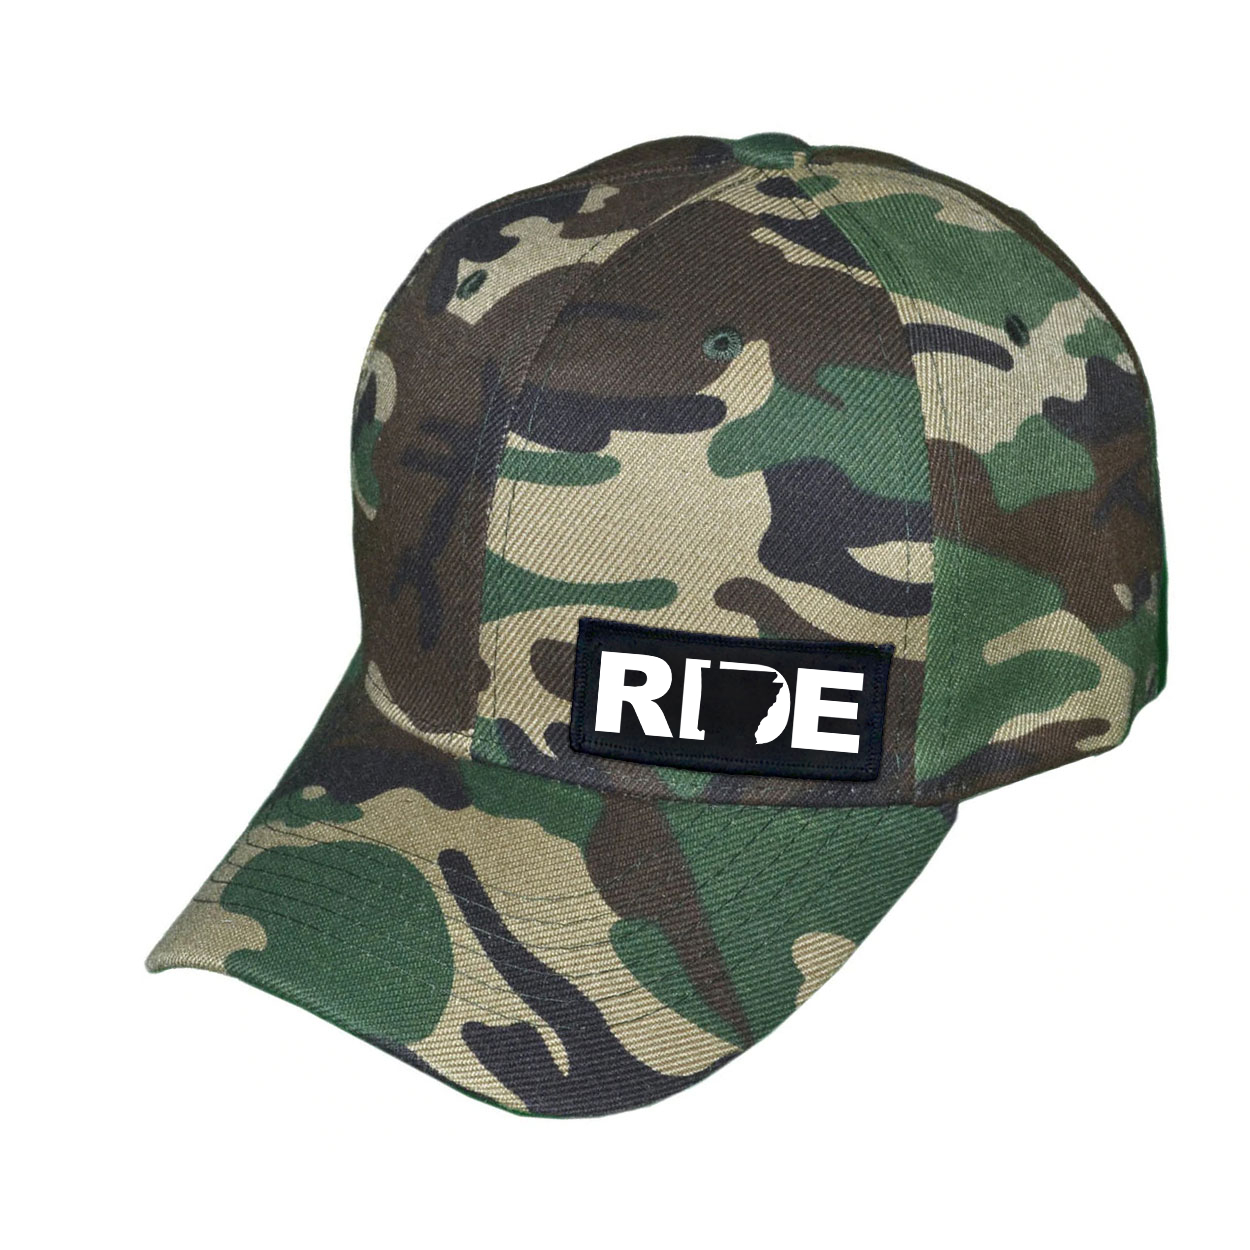 Ride Arkansas Night Out Woven Patch Hat Camo (White Logo)